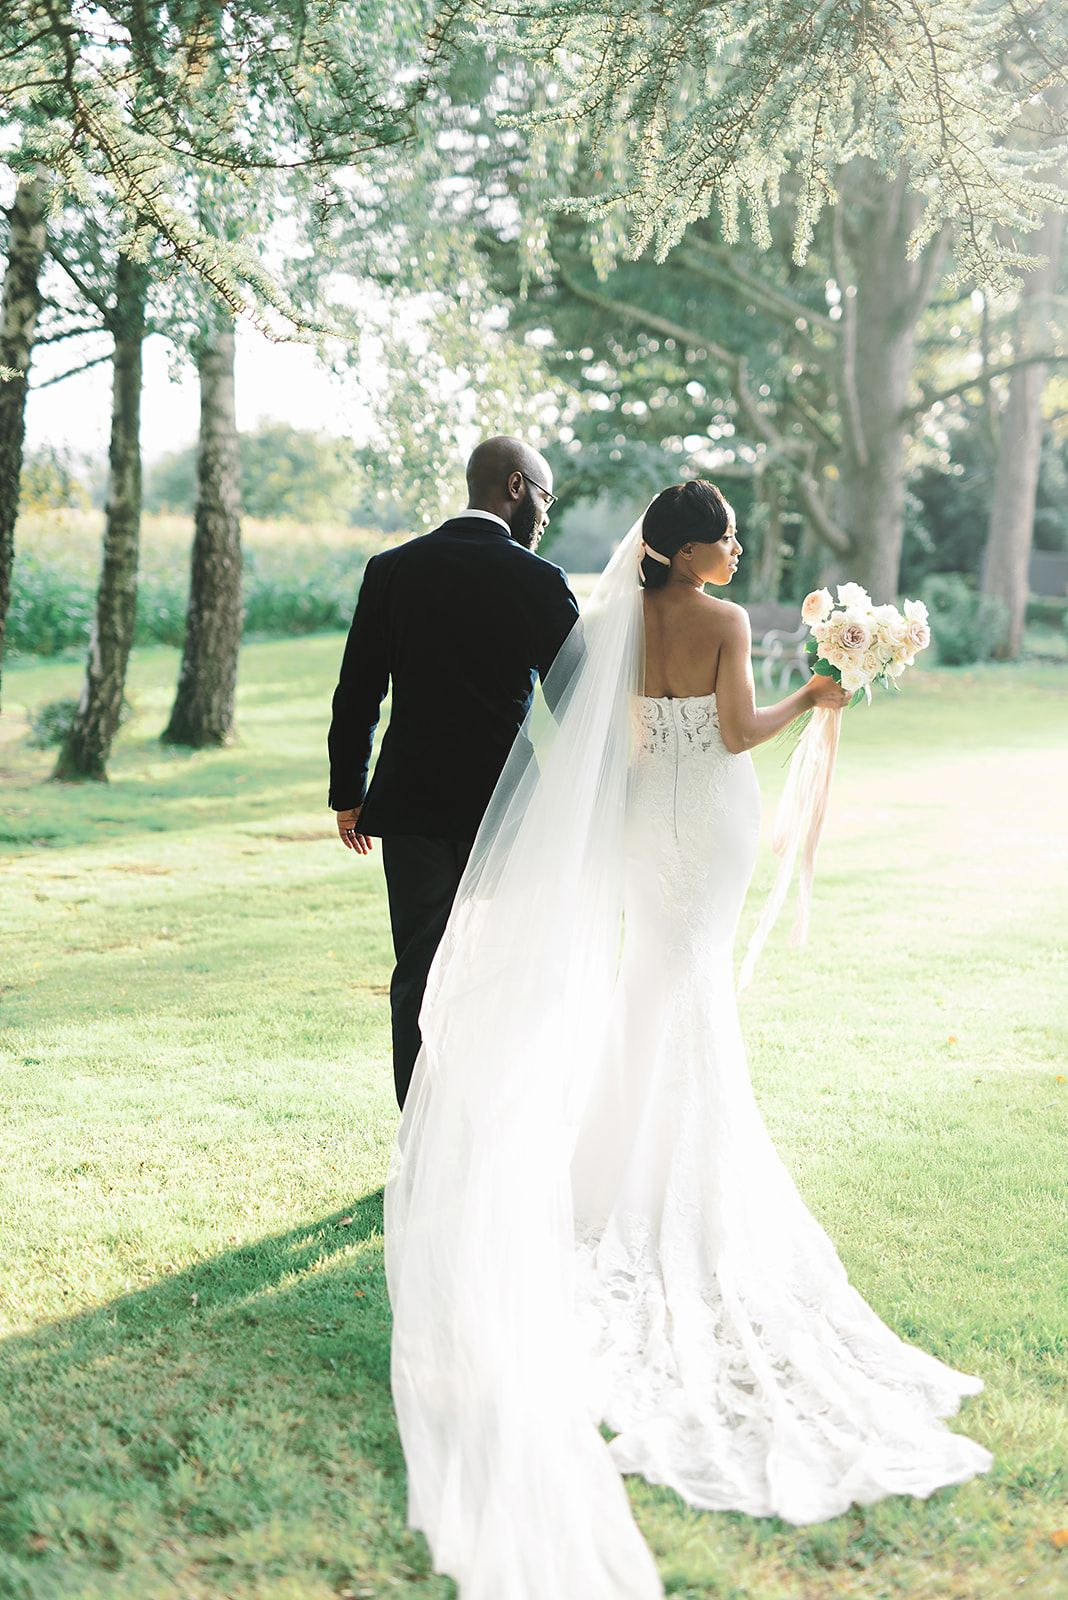 Bride and Groom in Black Tie Attire at Golden Hour